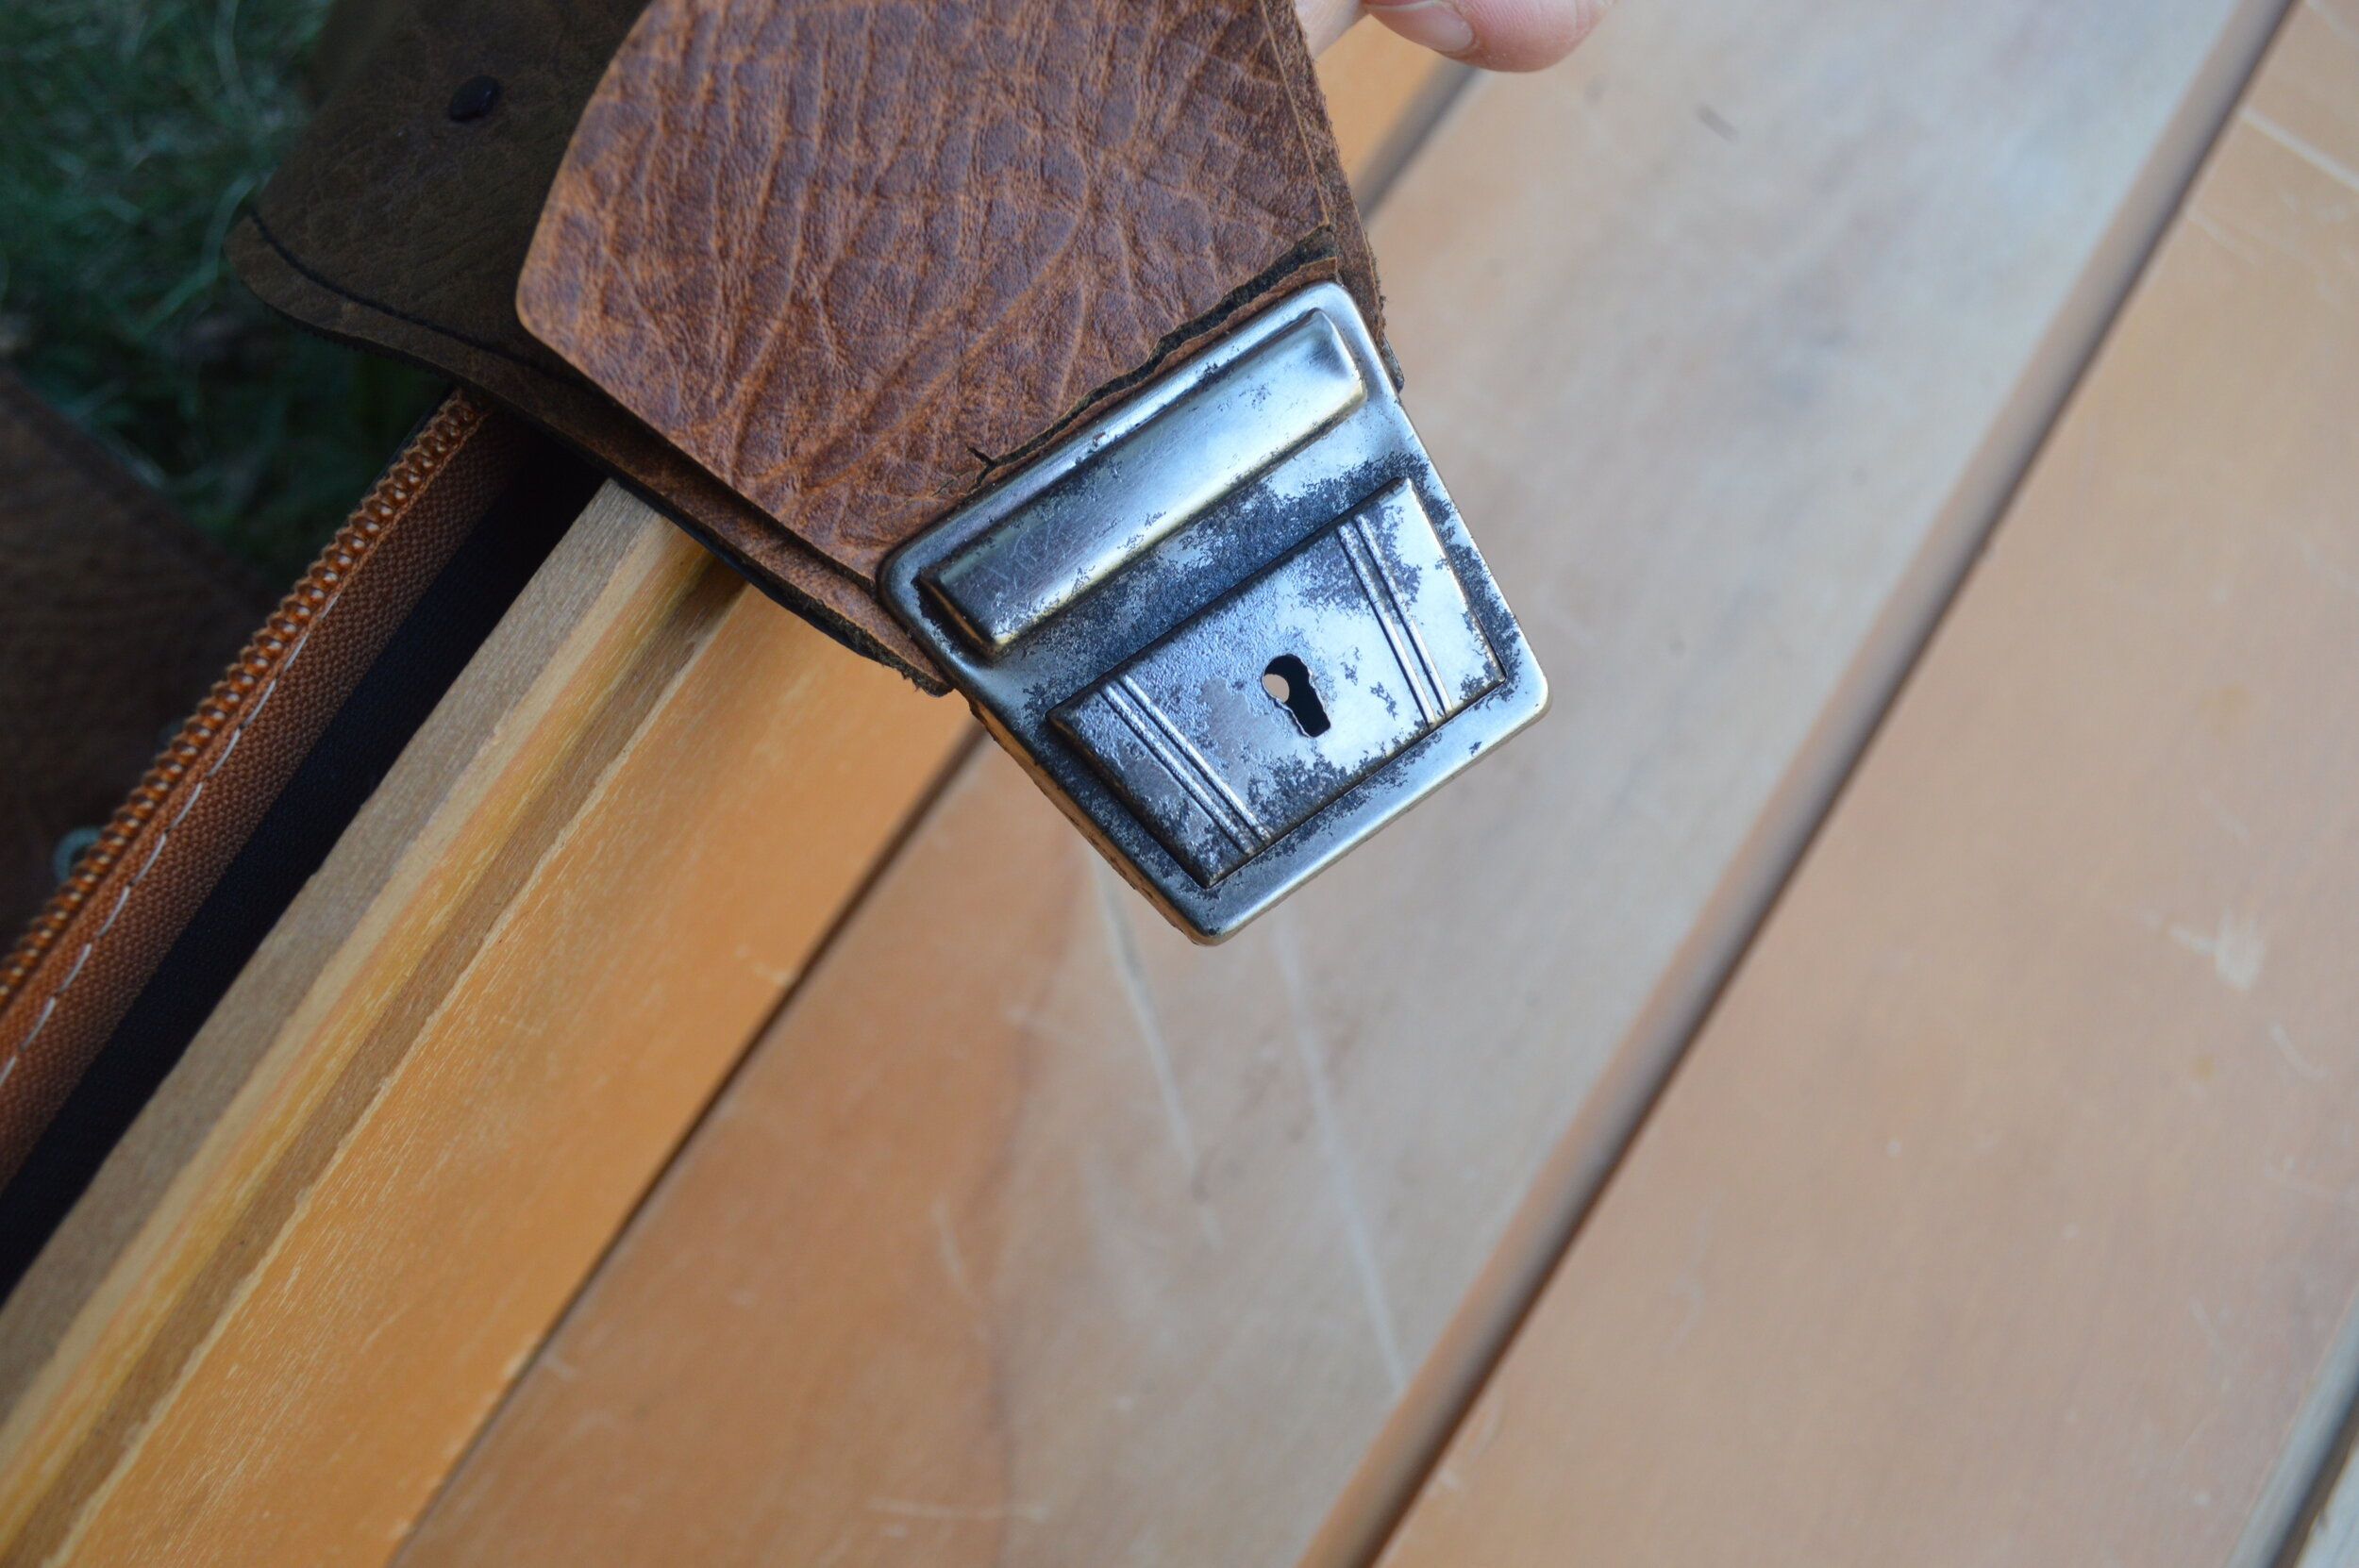 metal fastening buckle on leather suitcase strap